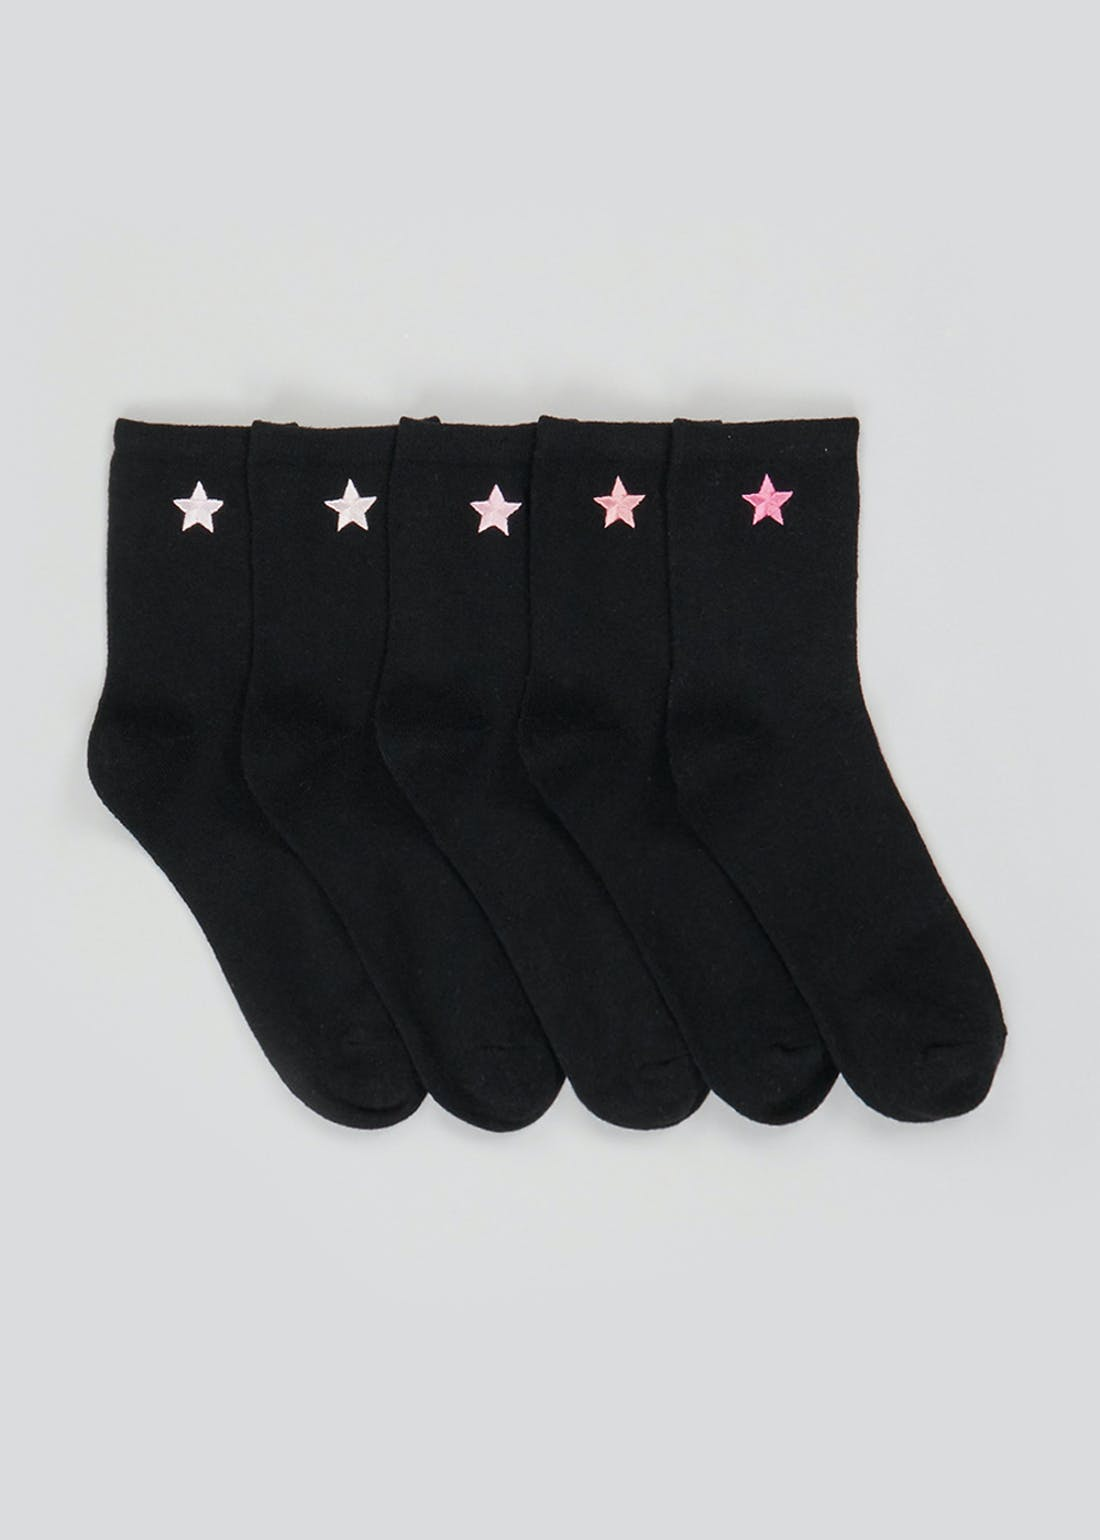 5 Pack Embroidered Star Socks